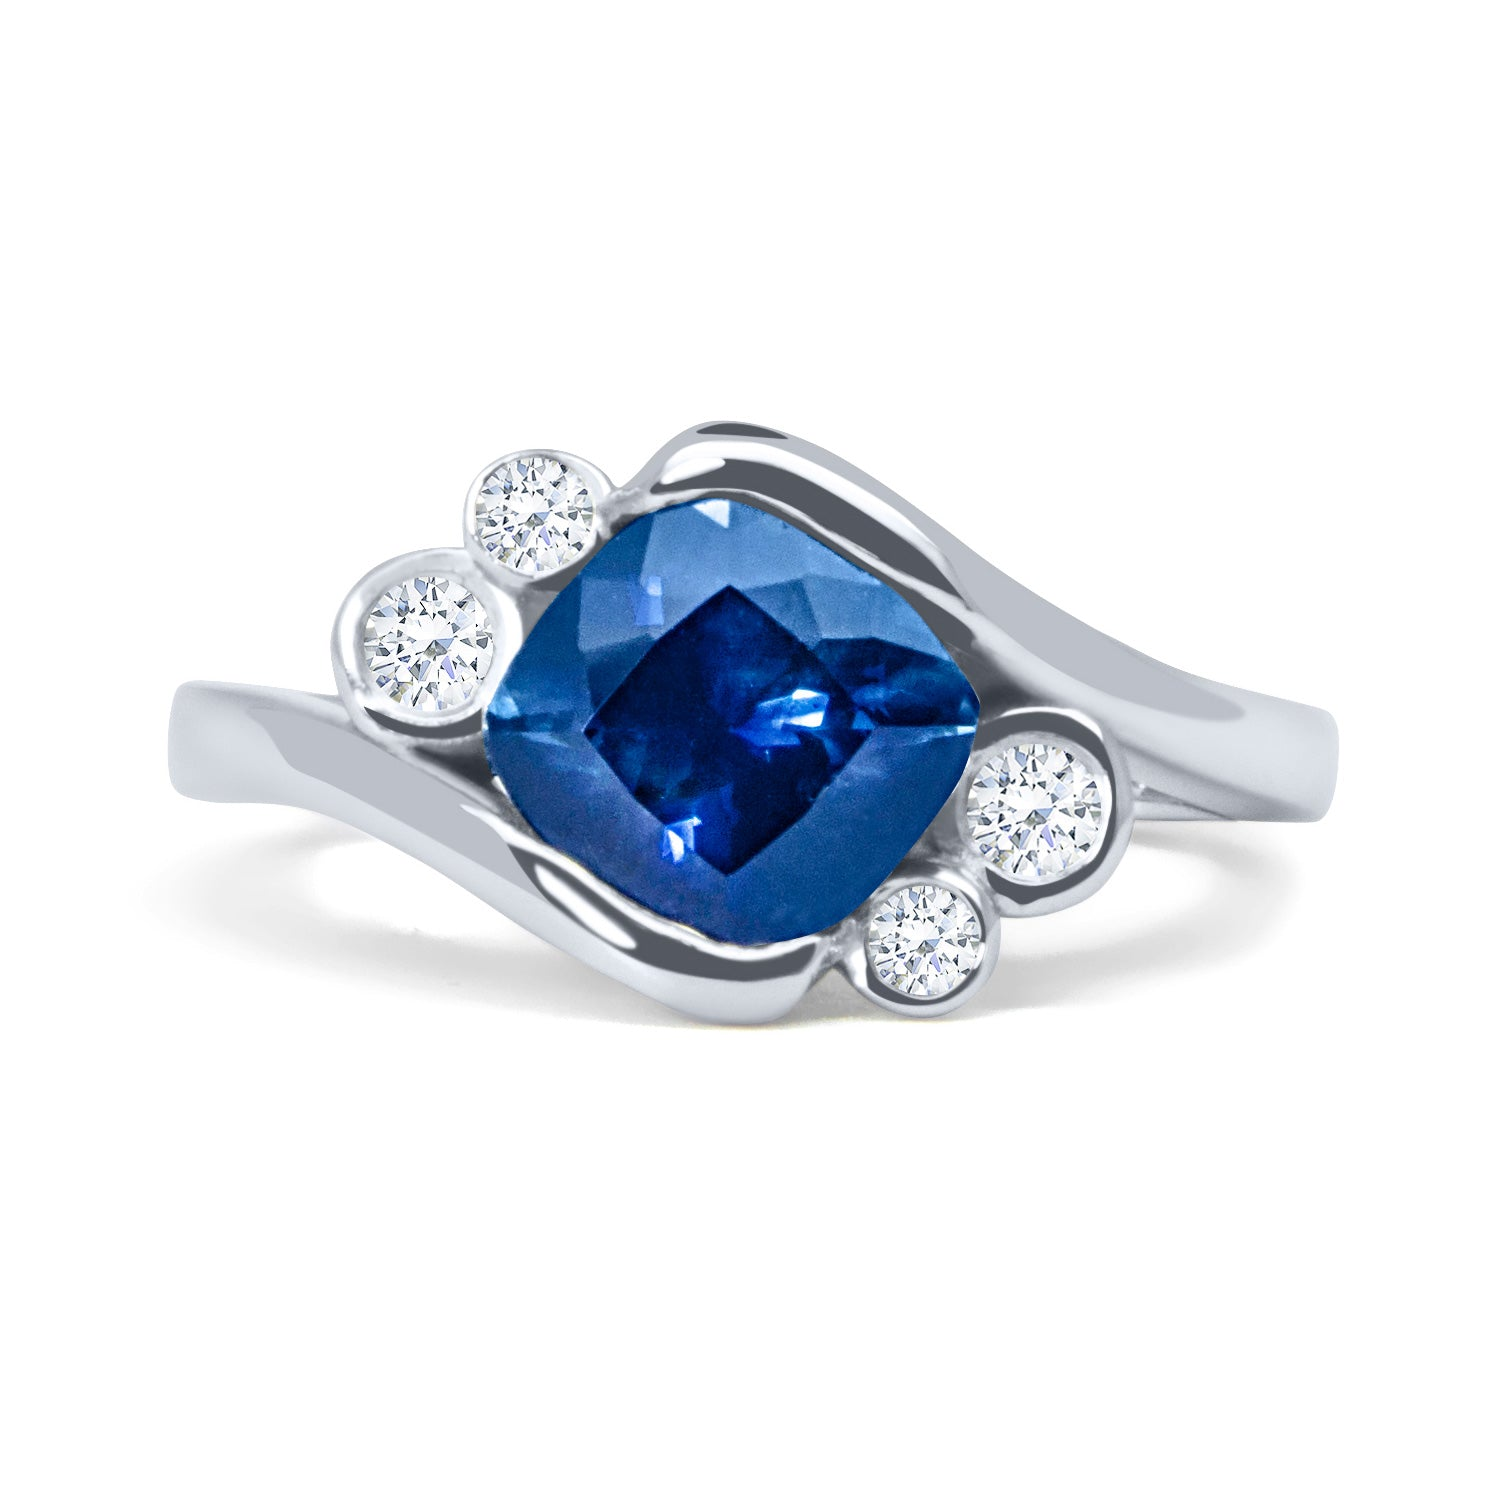 Bespoke Jonno engagement ring - cushion-cut 1.8ct Malawi sapphire, conflict-free diamonds and 100% recycled platinum band